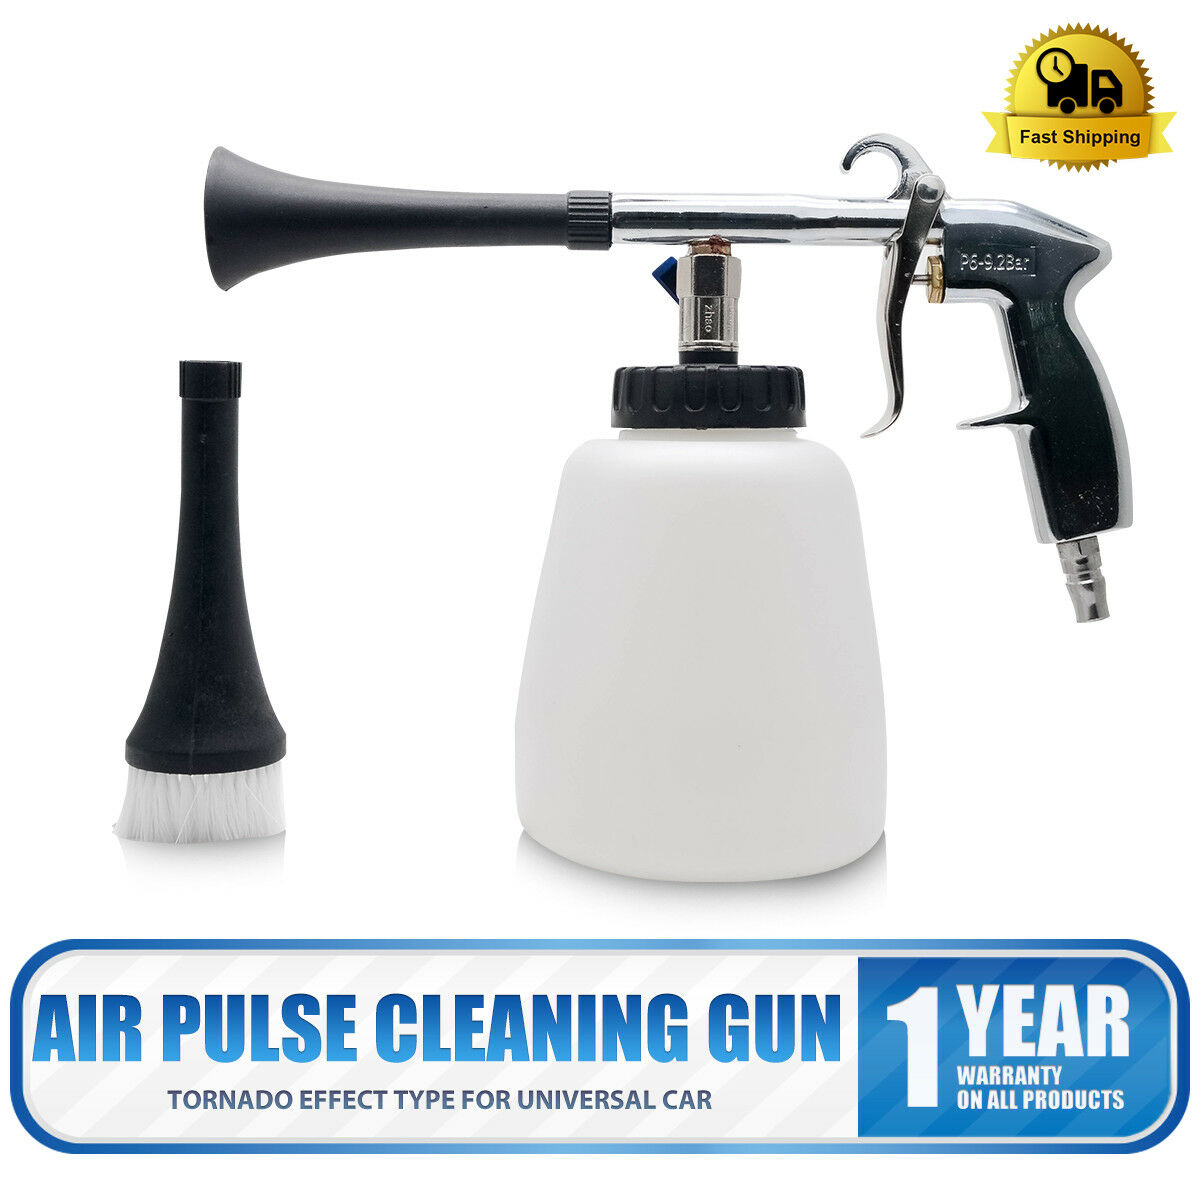 White tornador car surface cleaning washing air pulse spray tool with brush Prezzo: € 31,37